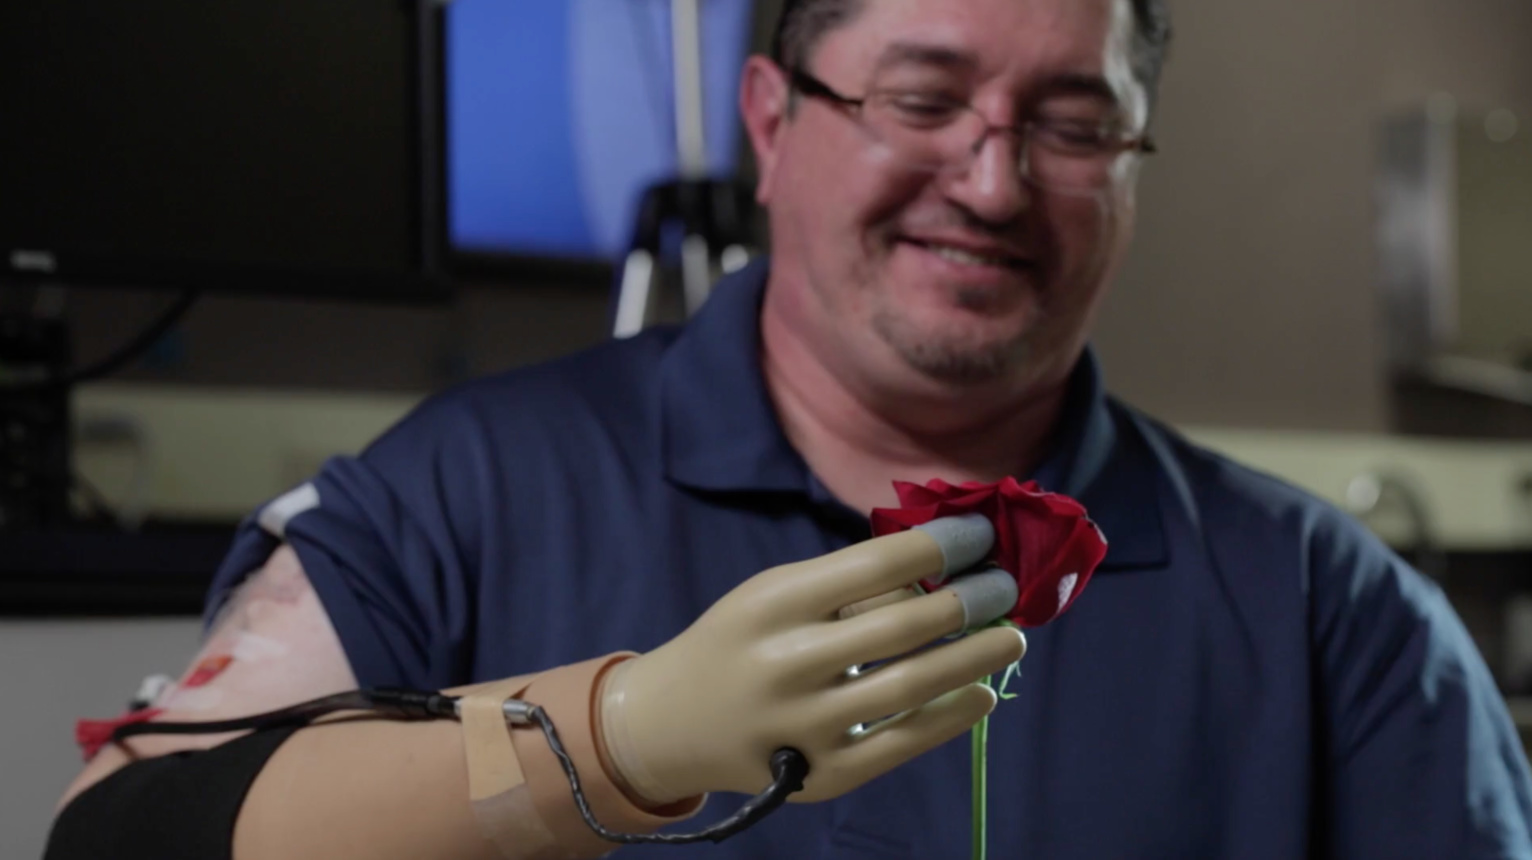 Prosthetic Hand Restores Amputee's Sense of Touch - IEEE Spectrum Report